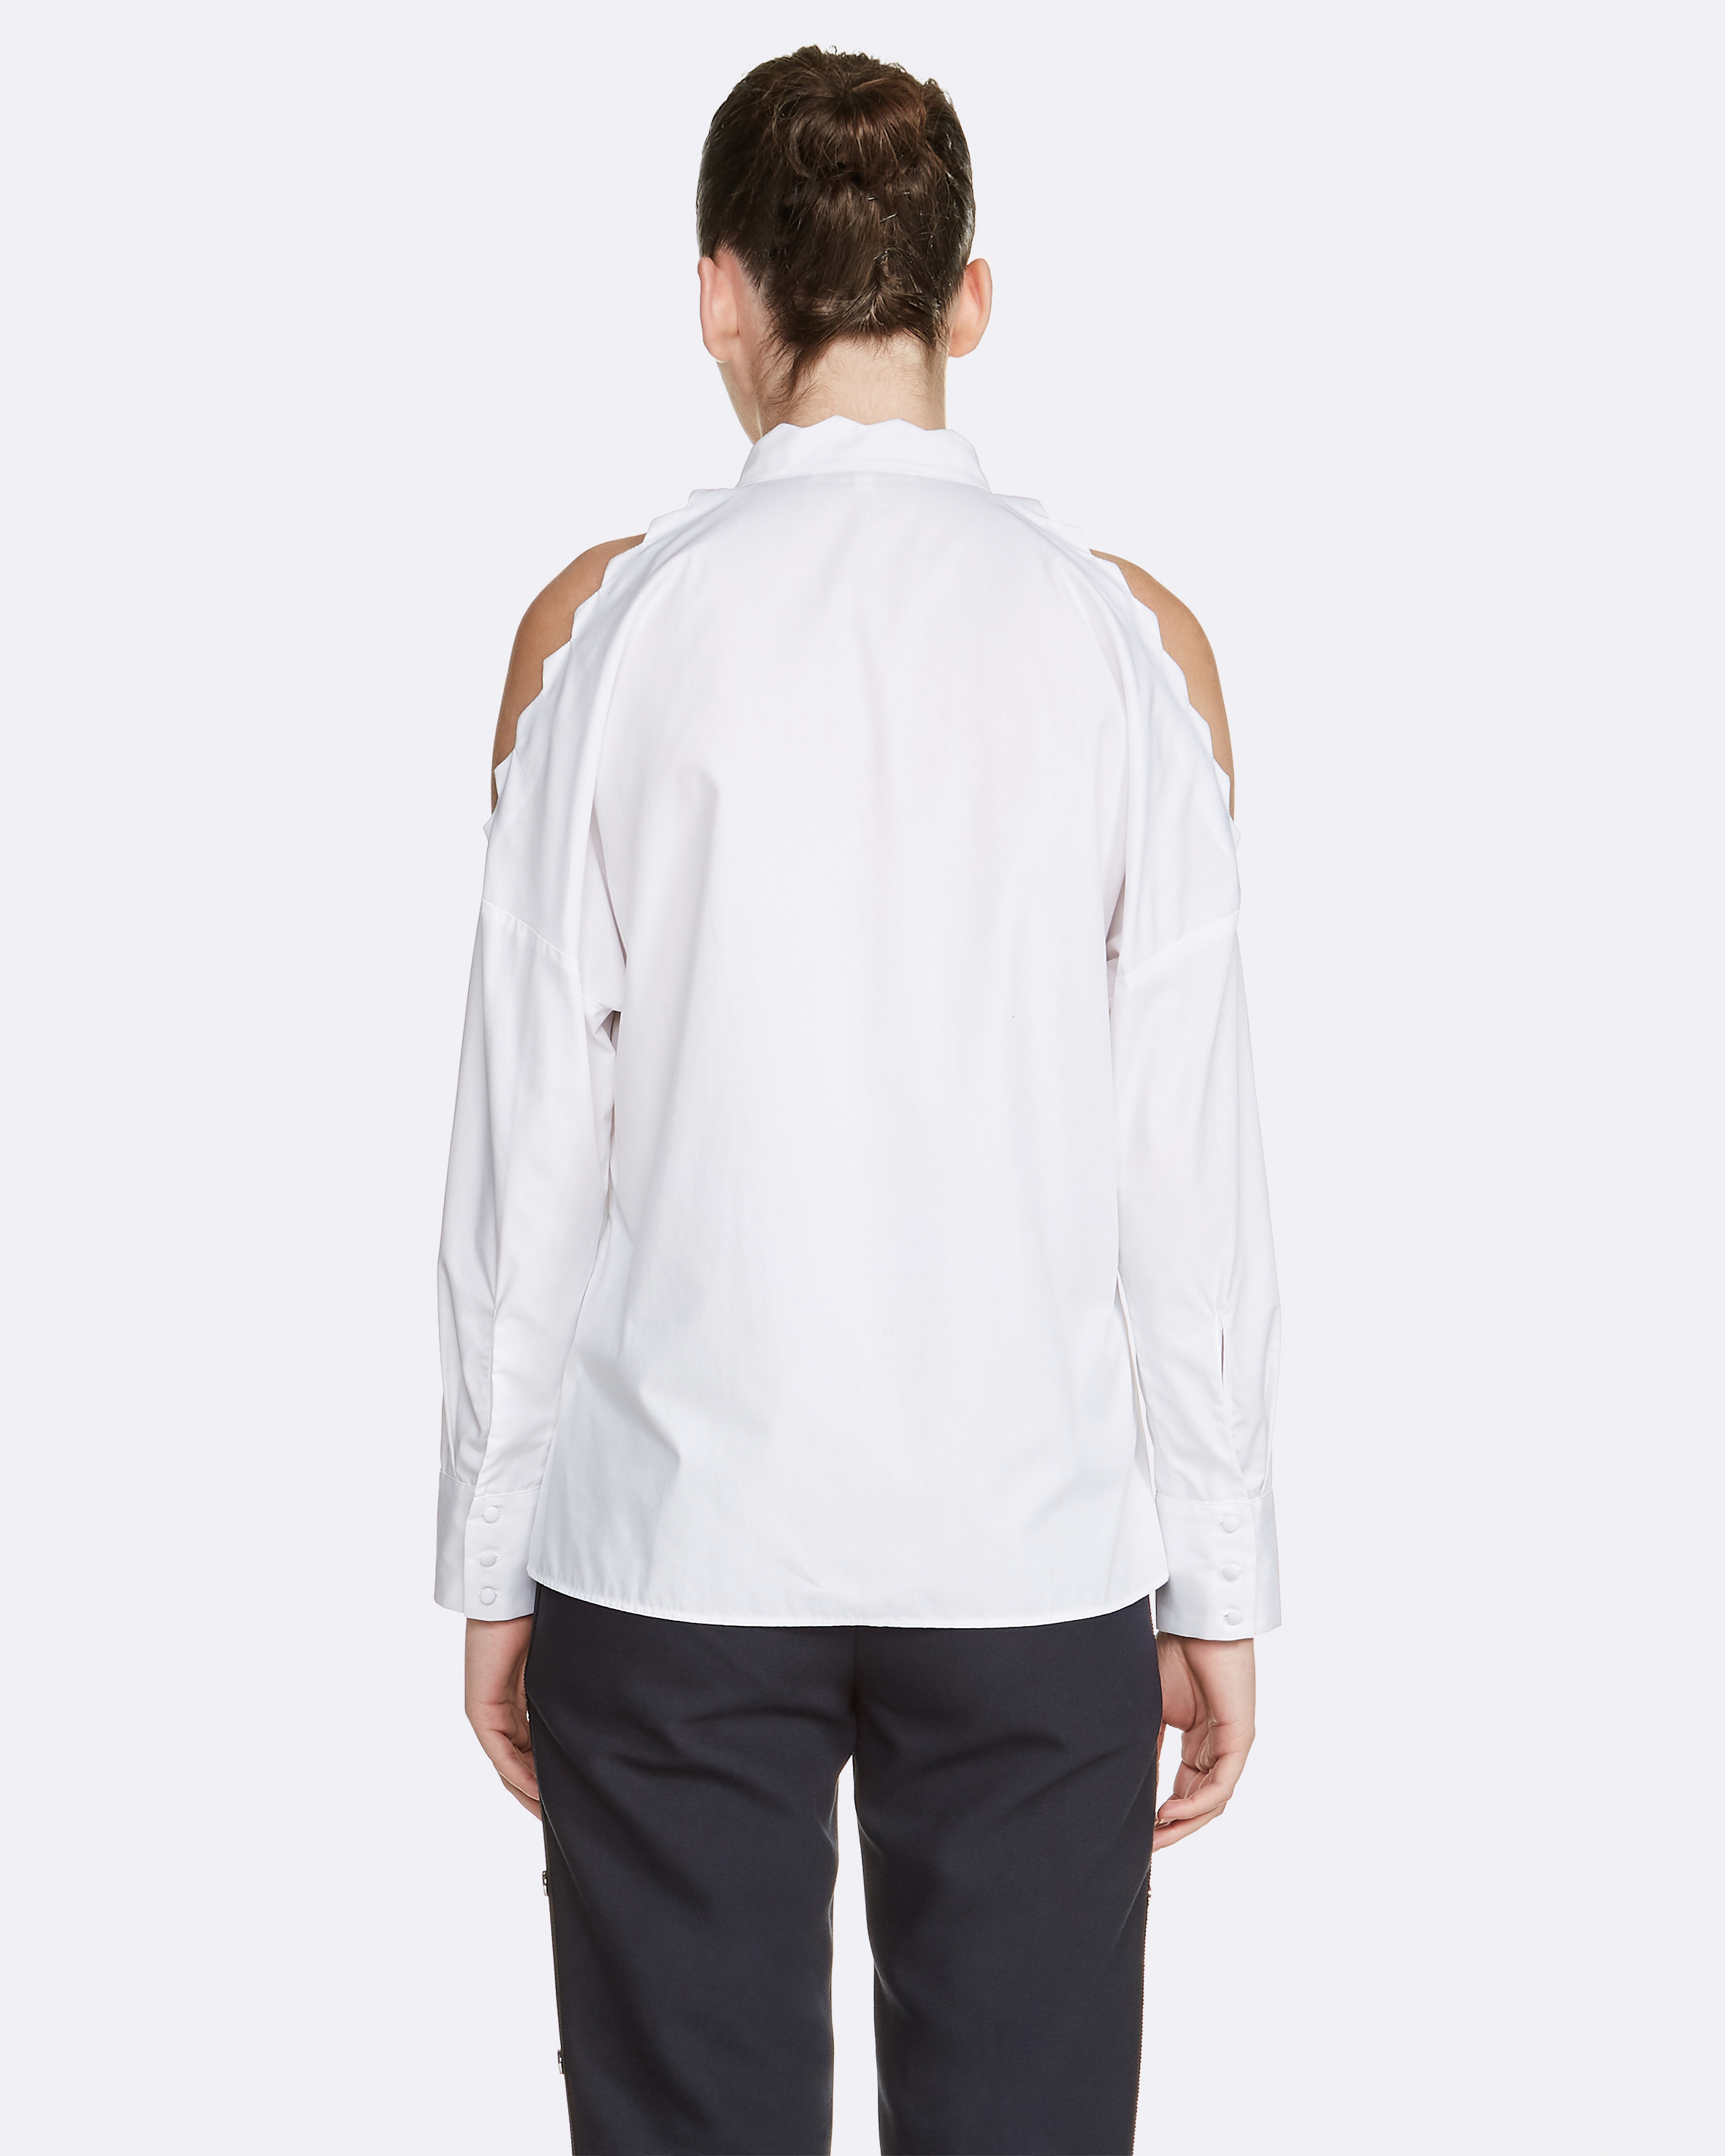 Shirt With Naked Shoulders - White